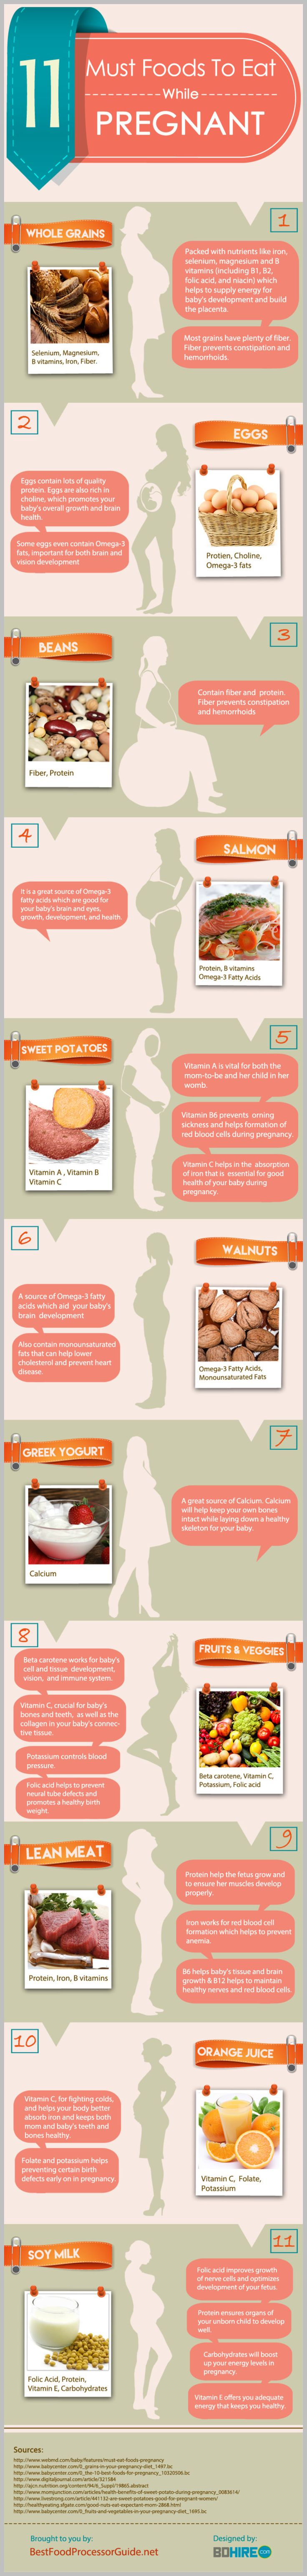 [Pregnancy Diet] Tips On How To Deal With Pregnancy Food Cravings -- Click image for more details. #mumtobe